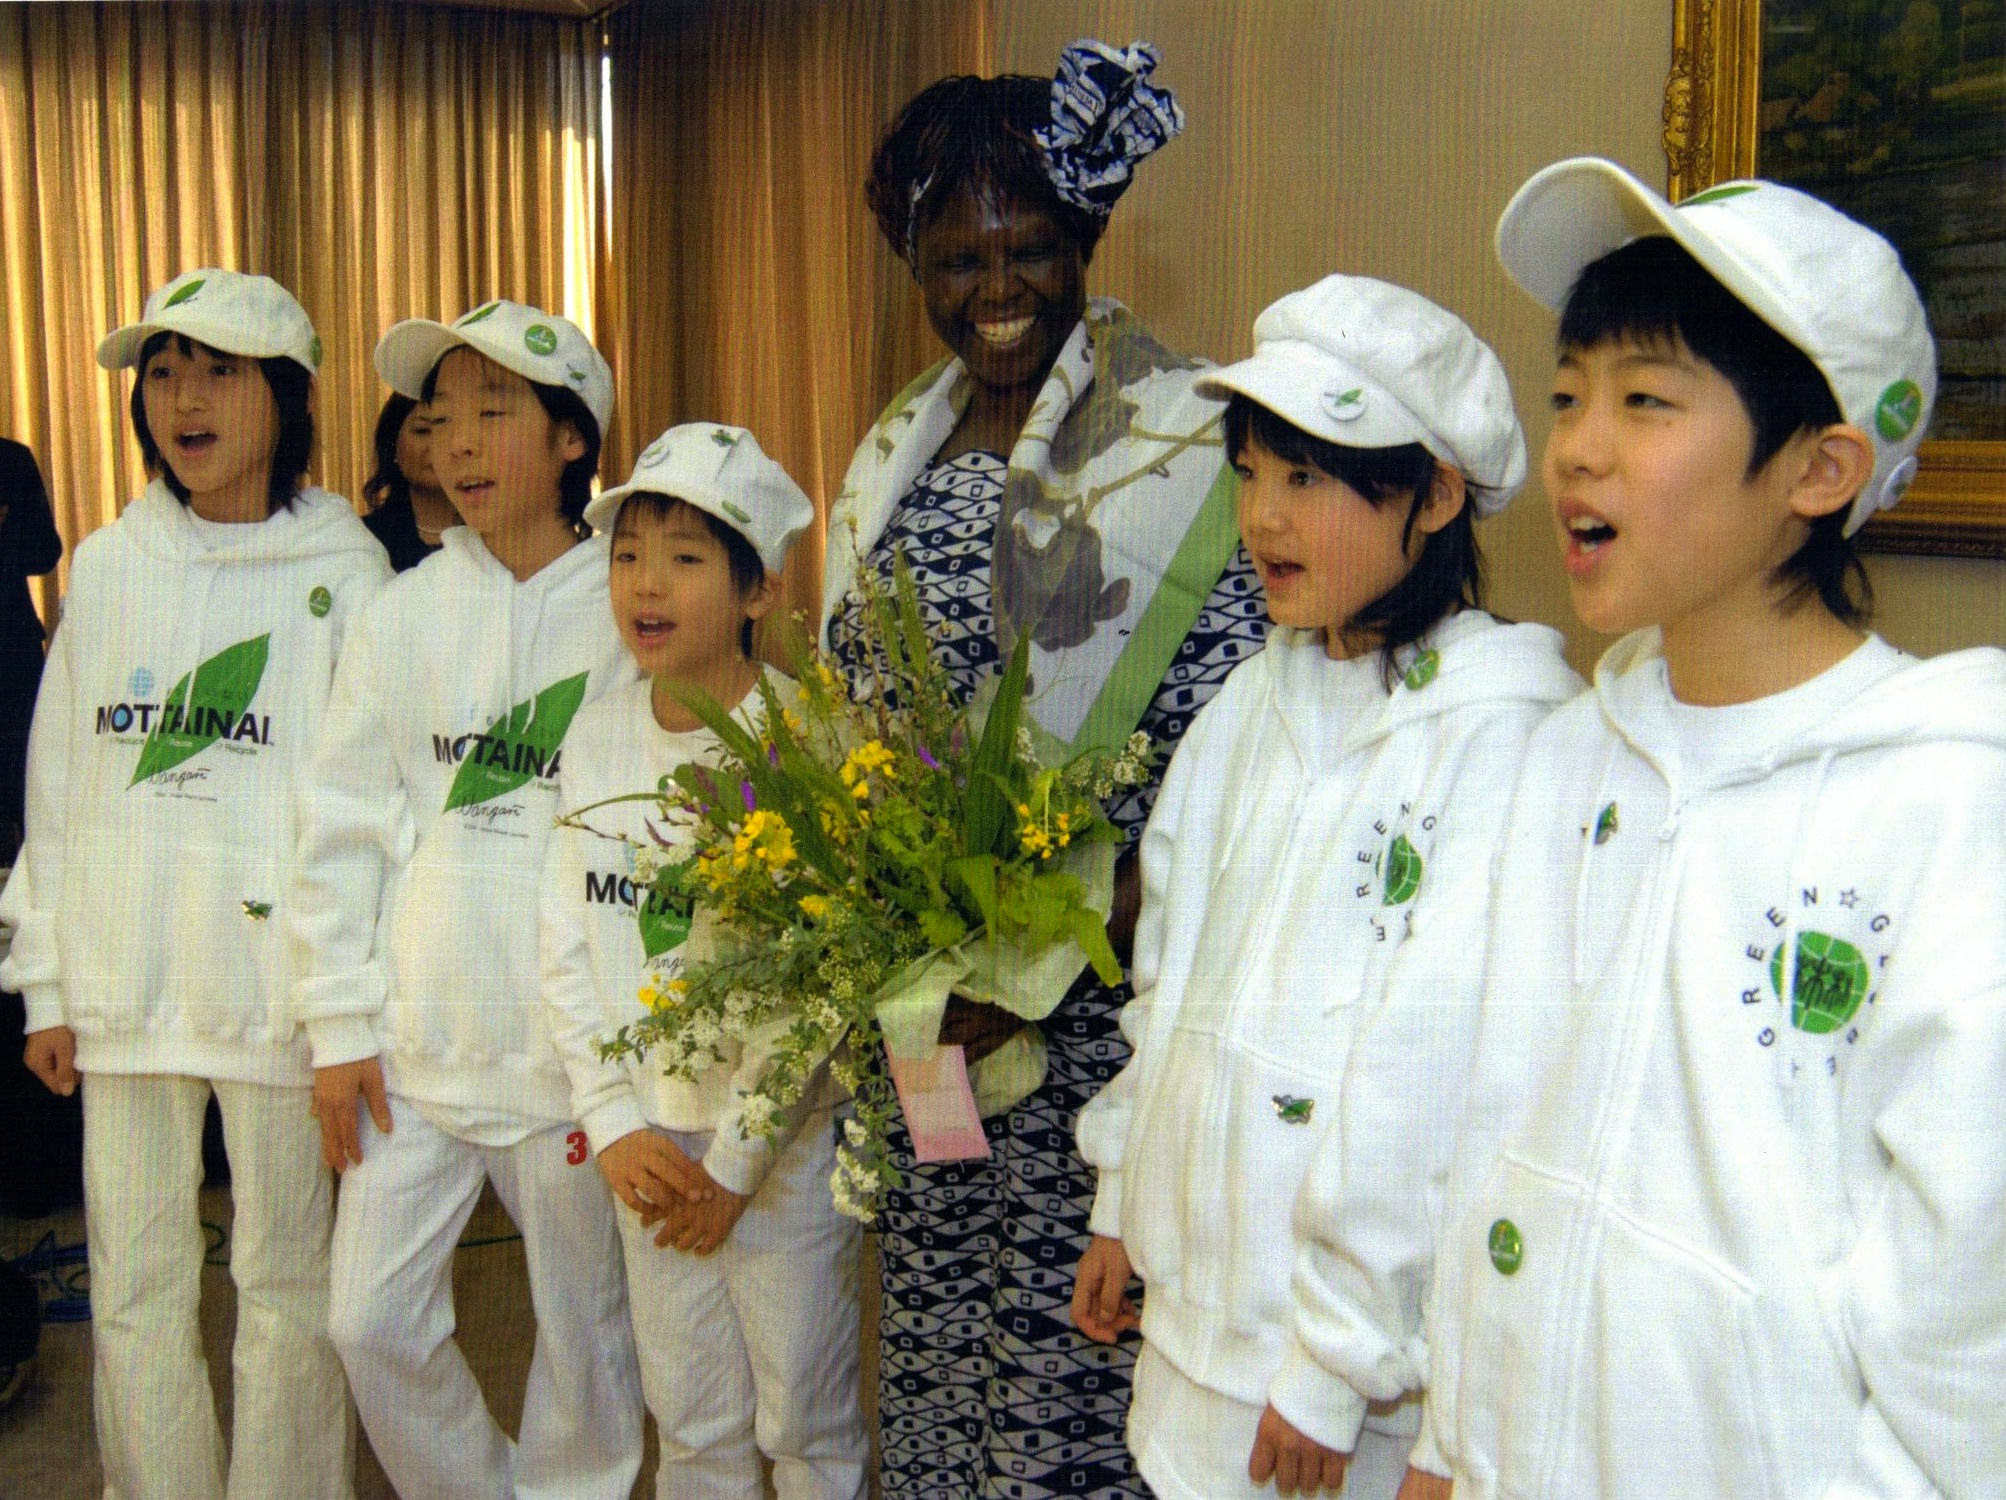 Professor Maathai with students during her visit to Japan